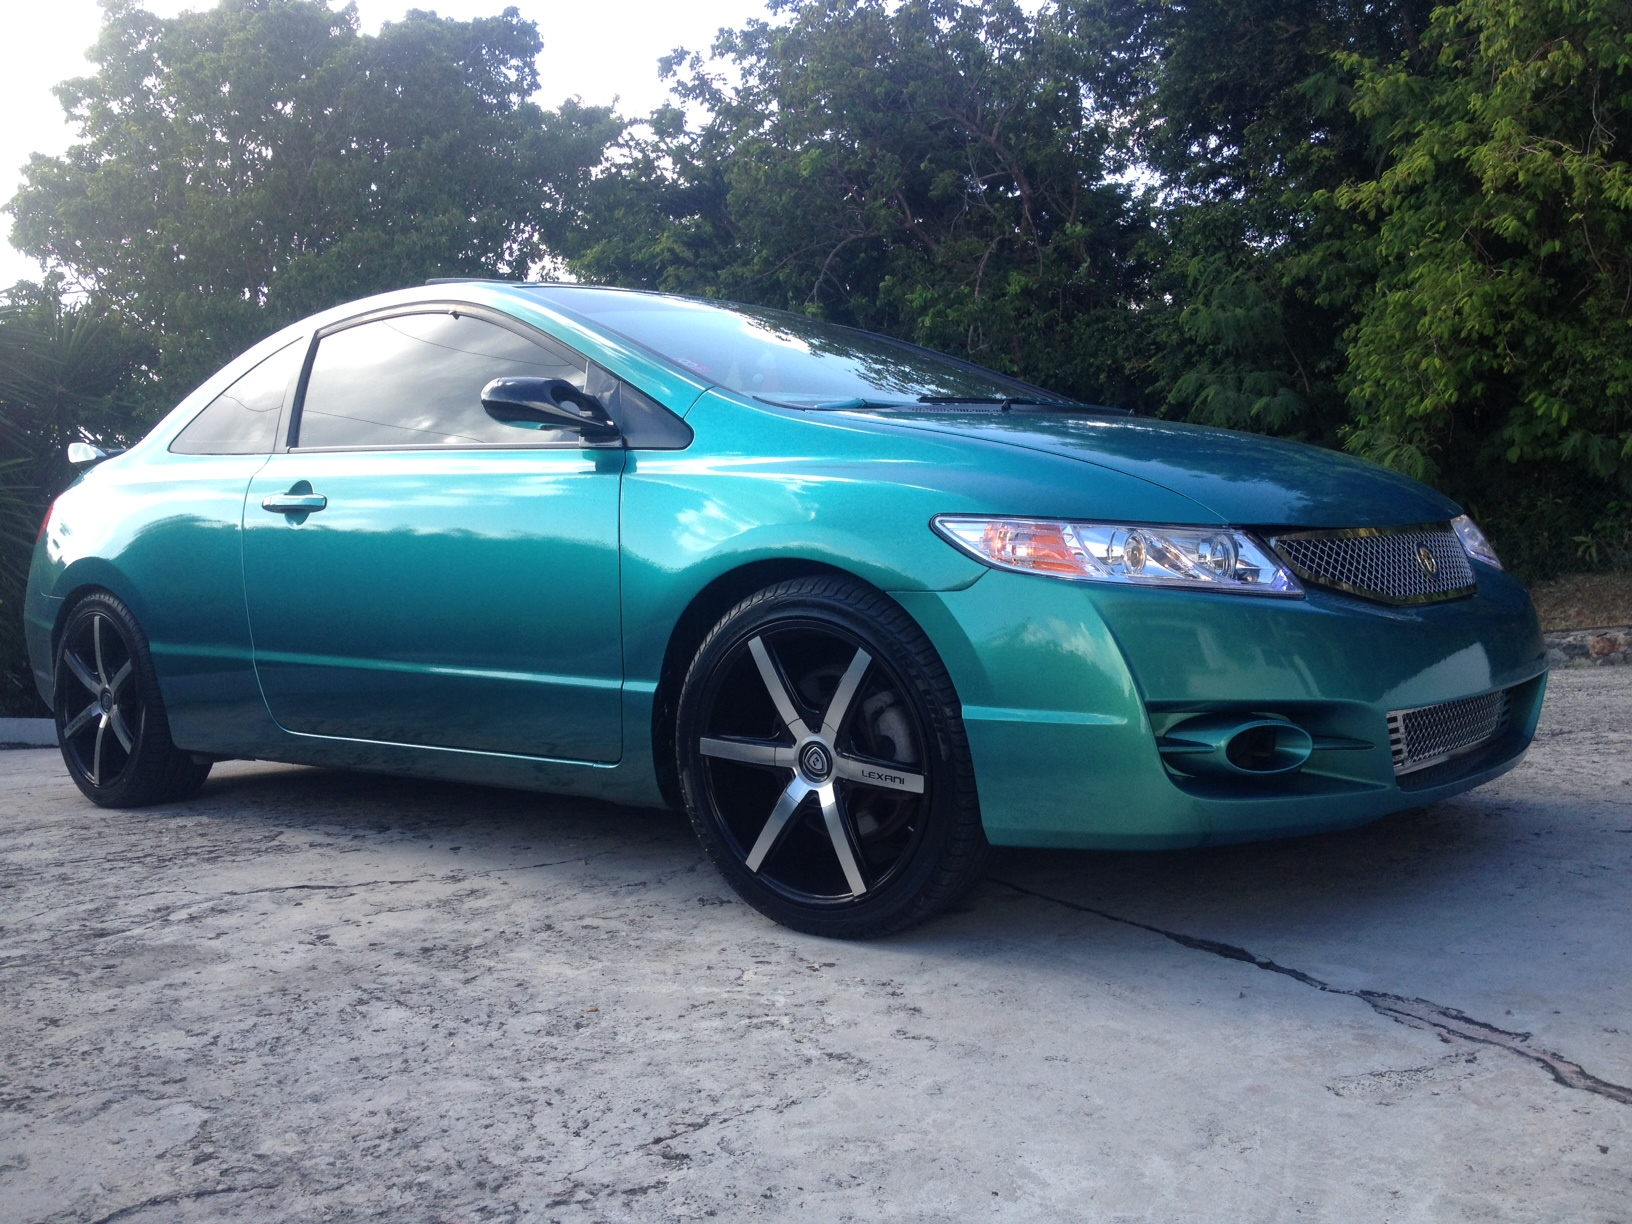 Blue Green Flip Carribean Gold Honda Civic Paint With Pearl